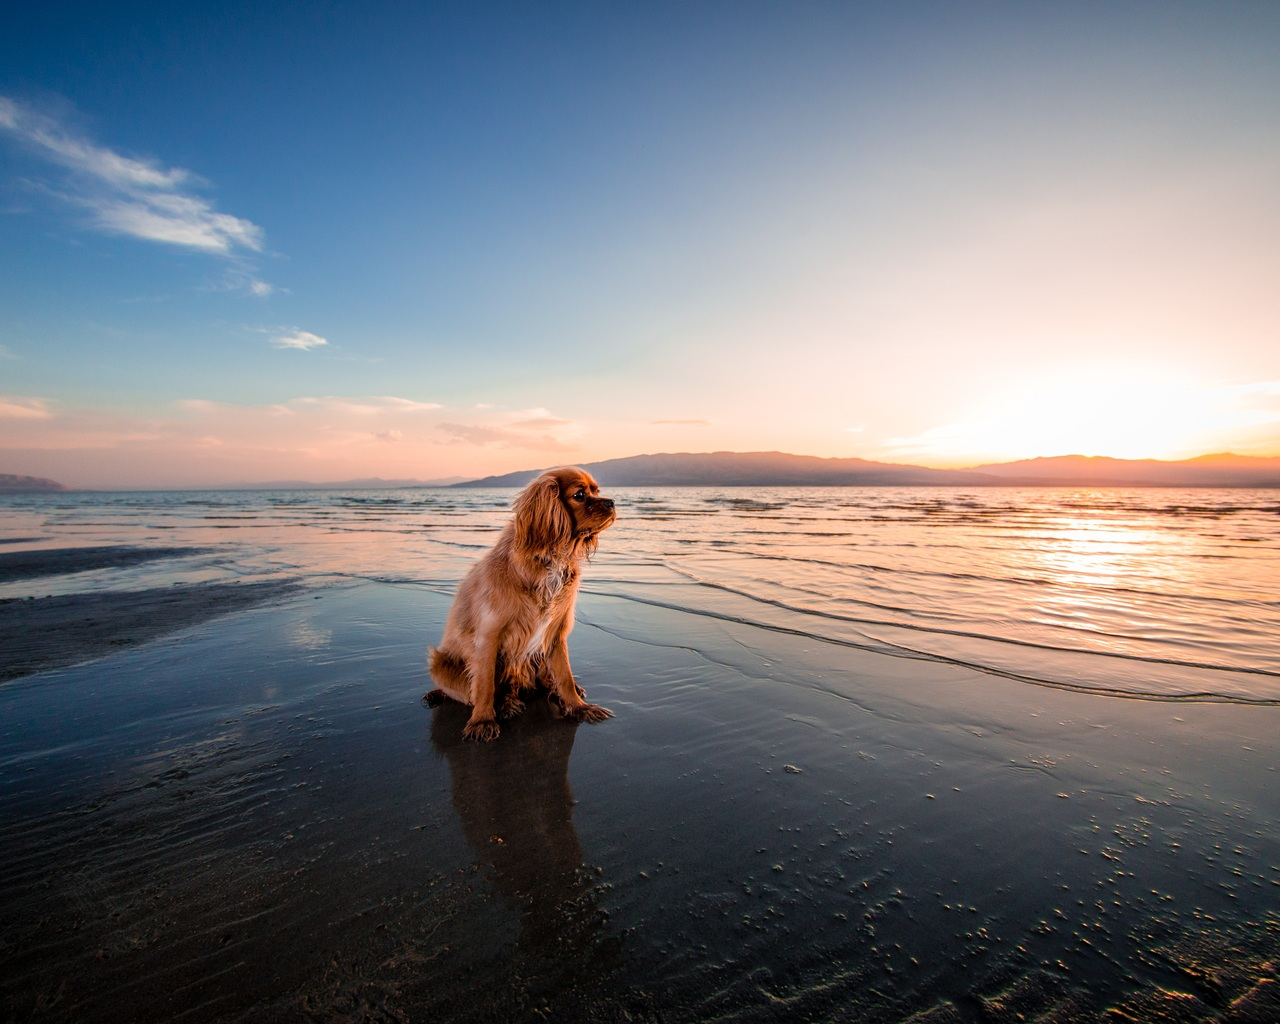 sunrise-dog-ocean-5k-vh.jpg